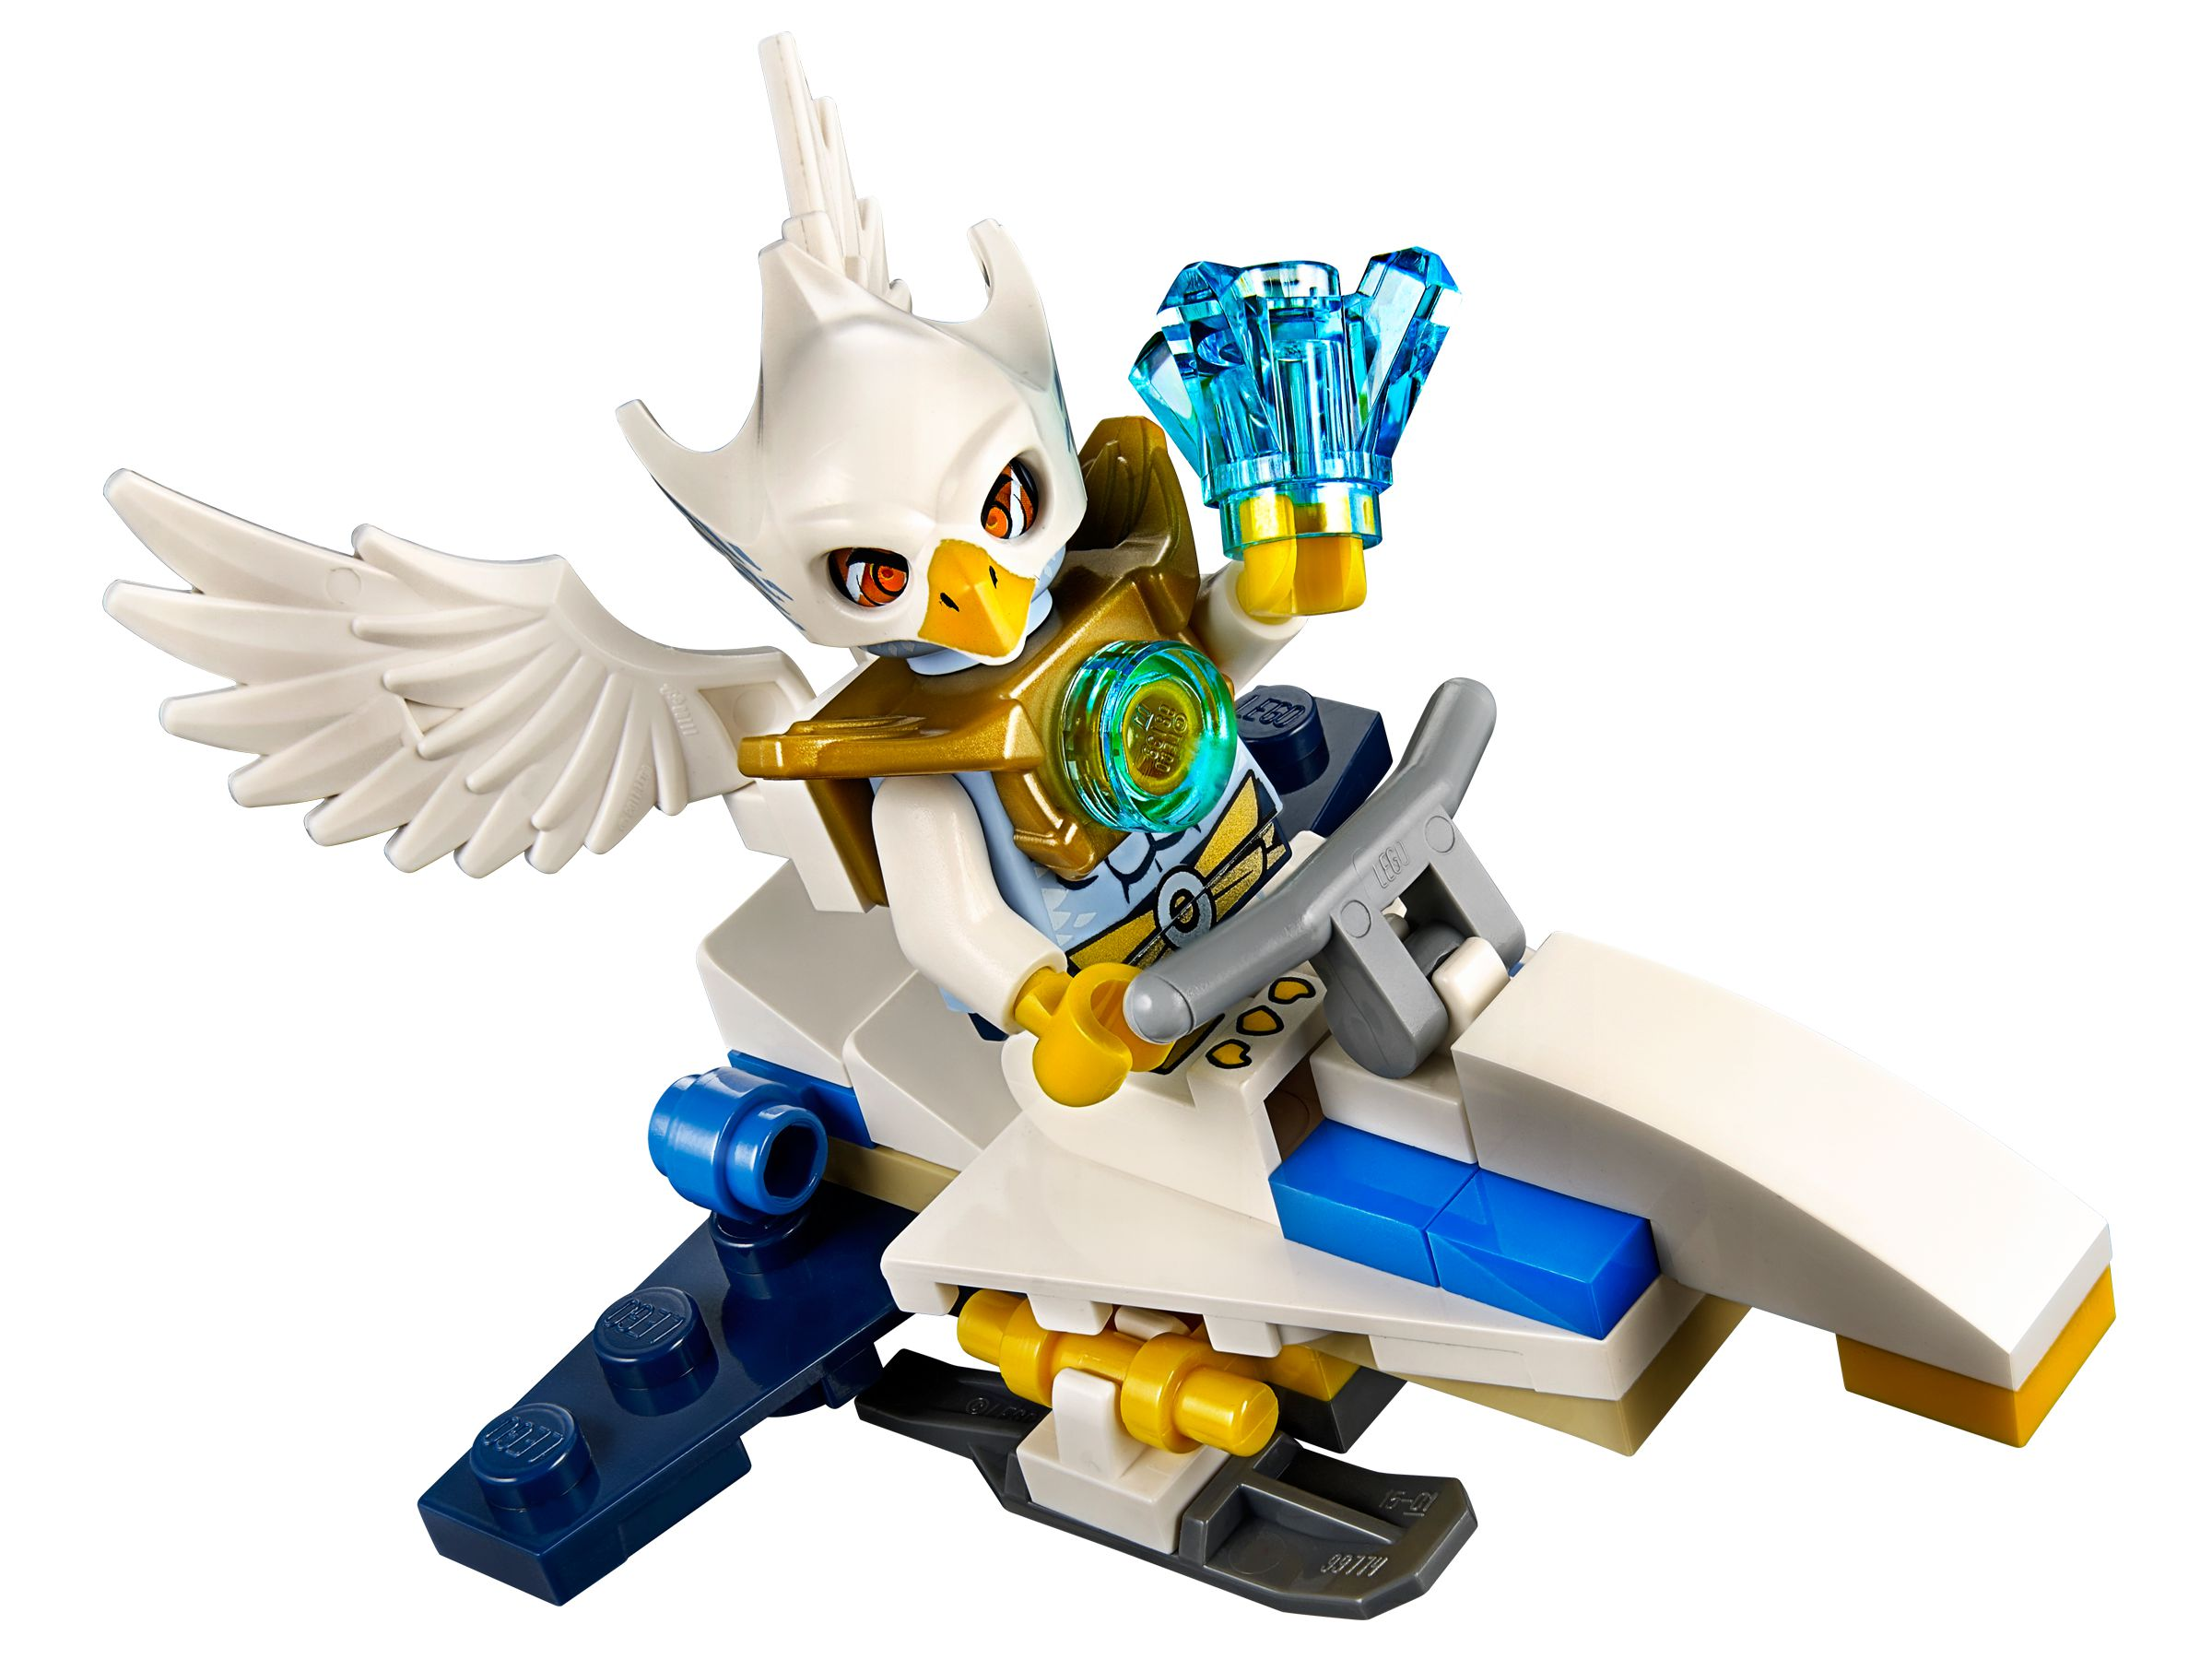 LEGO Legends Of Chima 30250 CHIMA Ewar's Acro-Fighter LEGO_30250_alt2.jpg